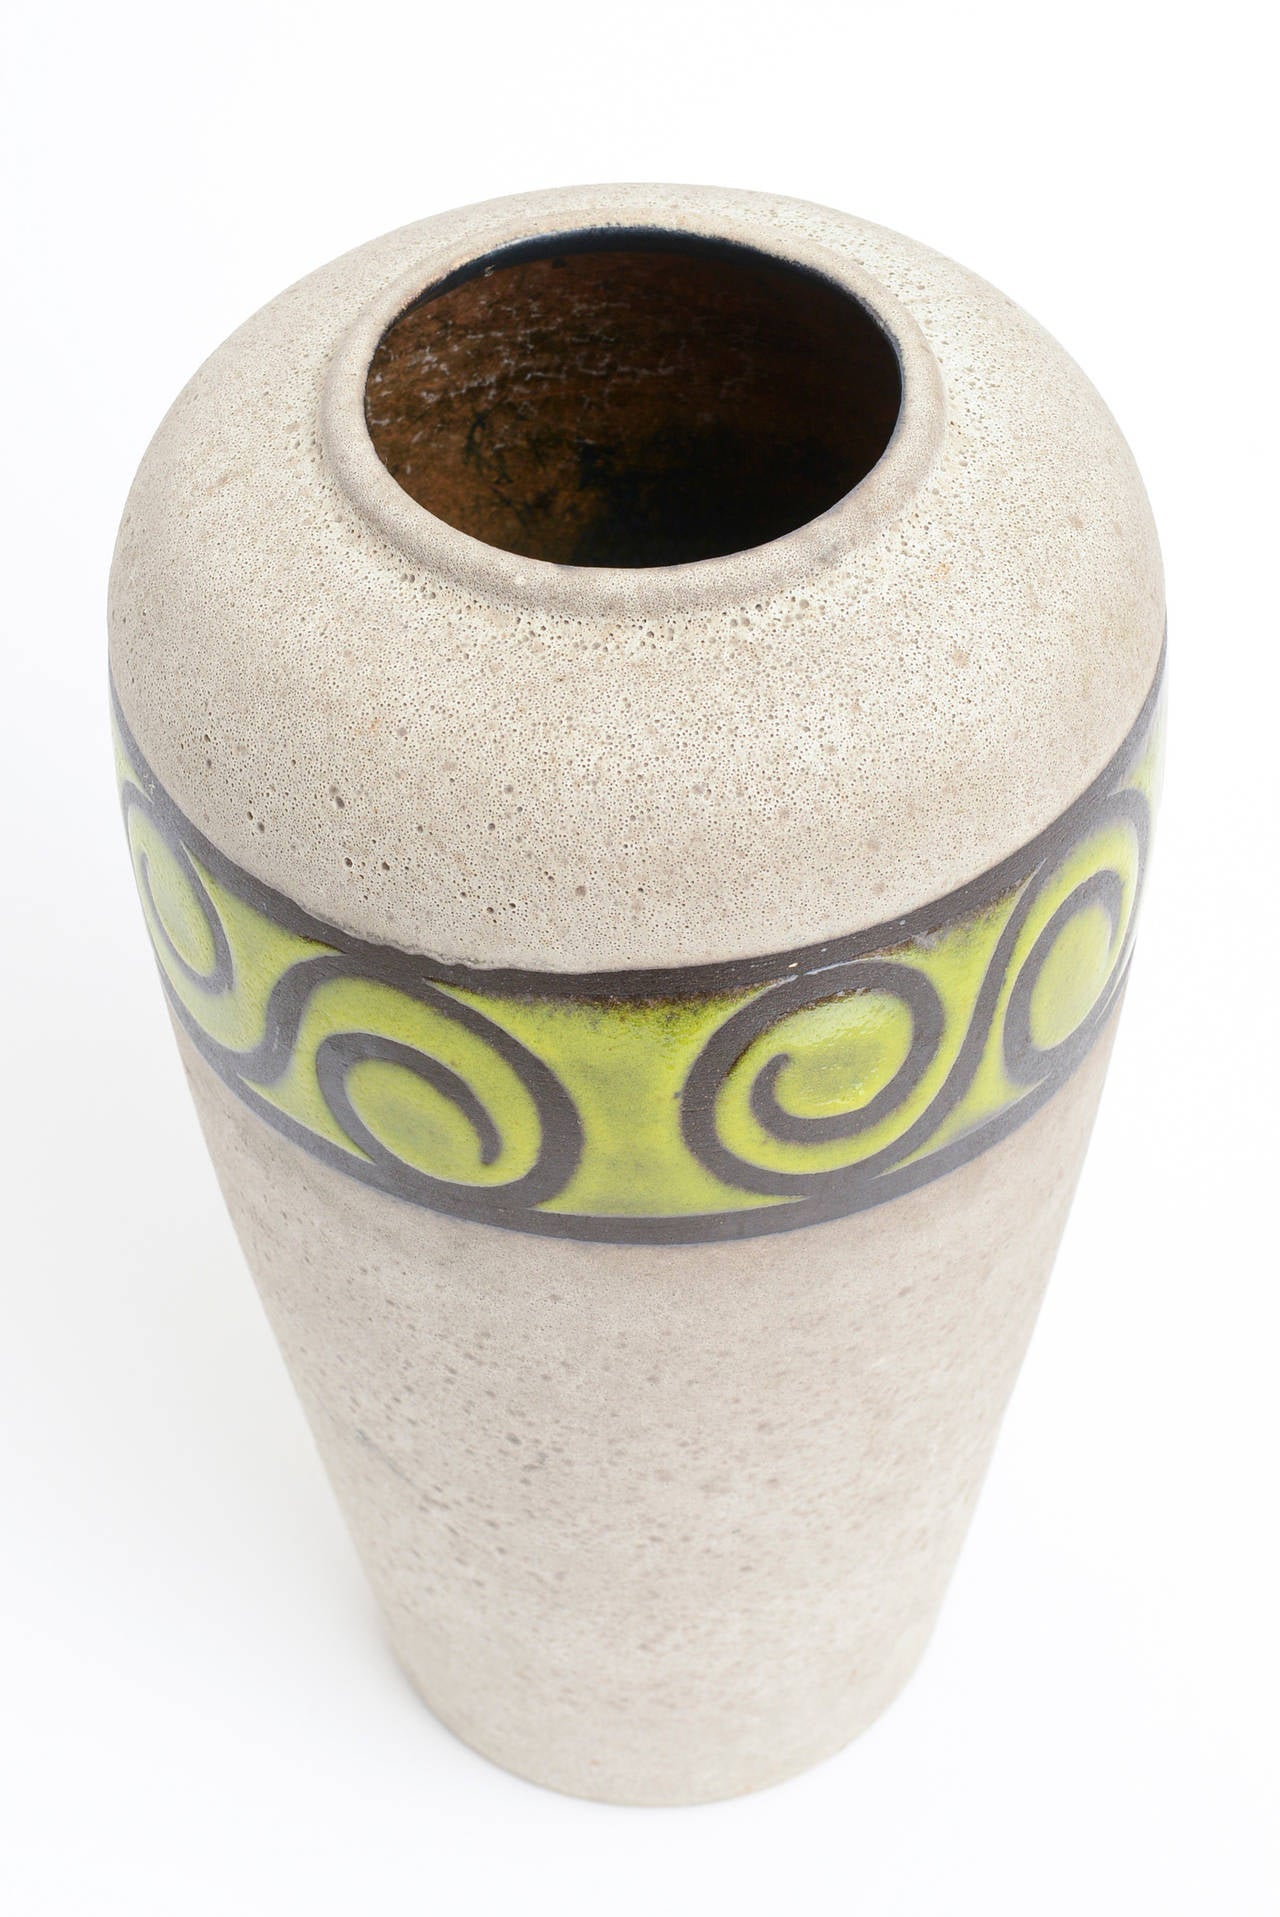 Western Germany Monumental Ceramic Vessel or Vase In Good Condition For Sale In North Miami, FL